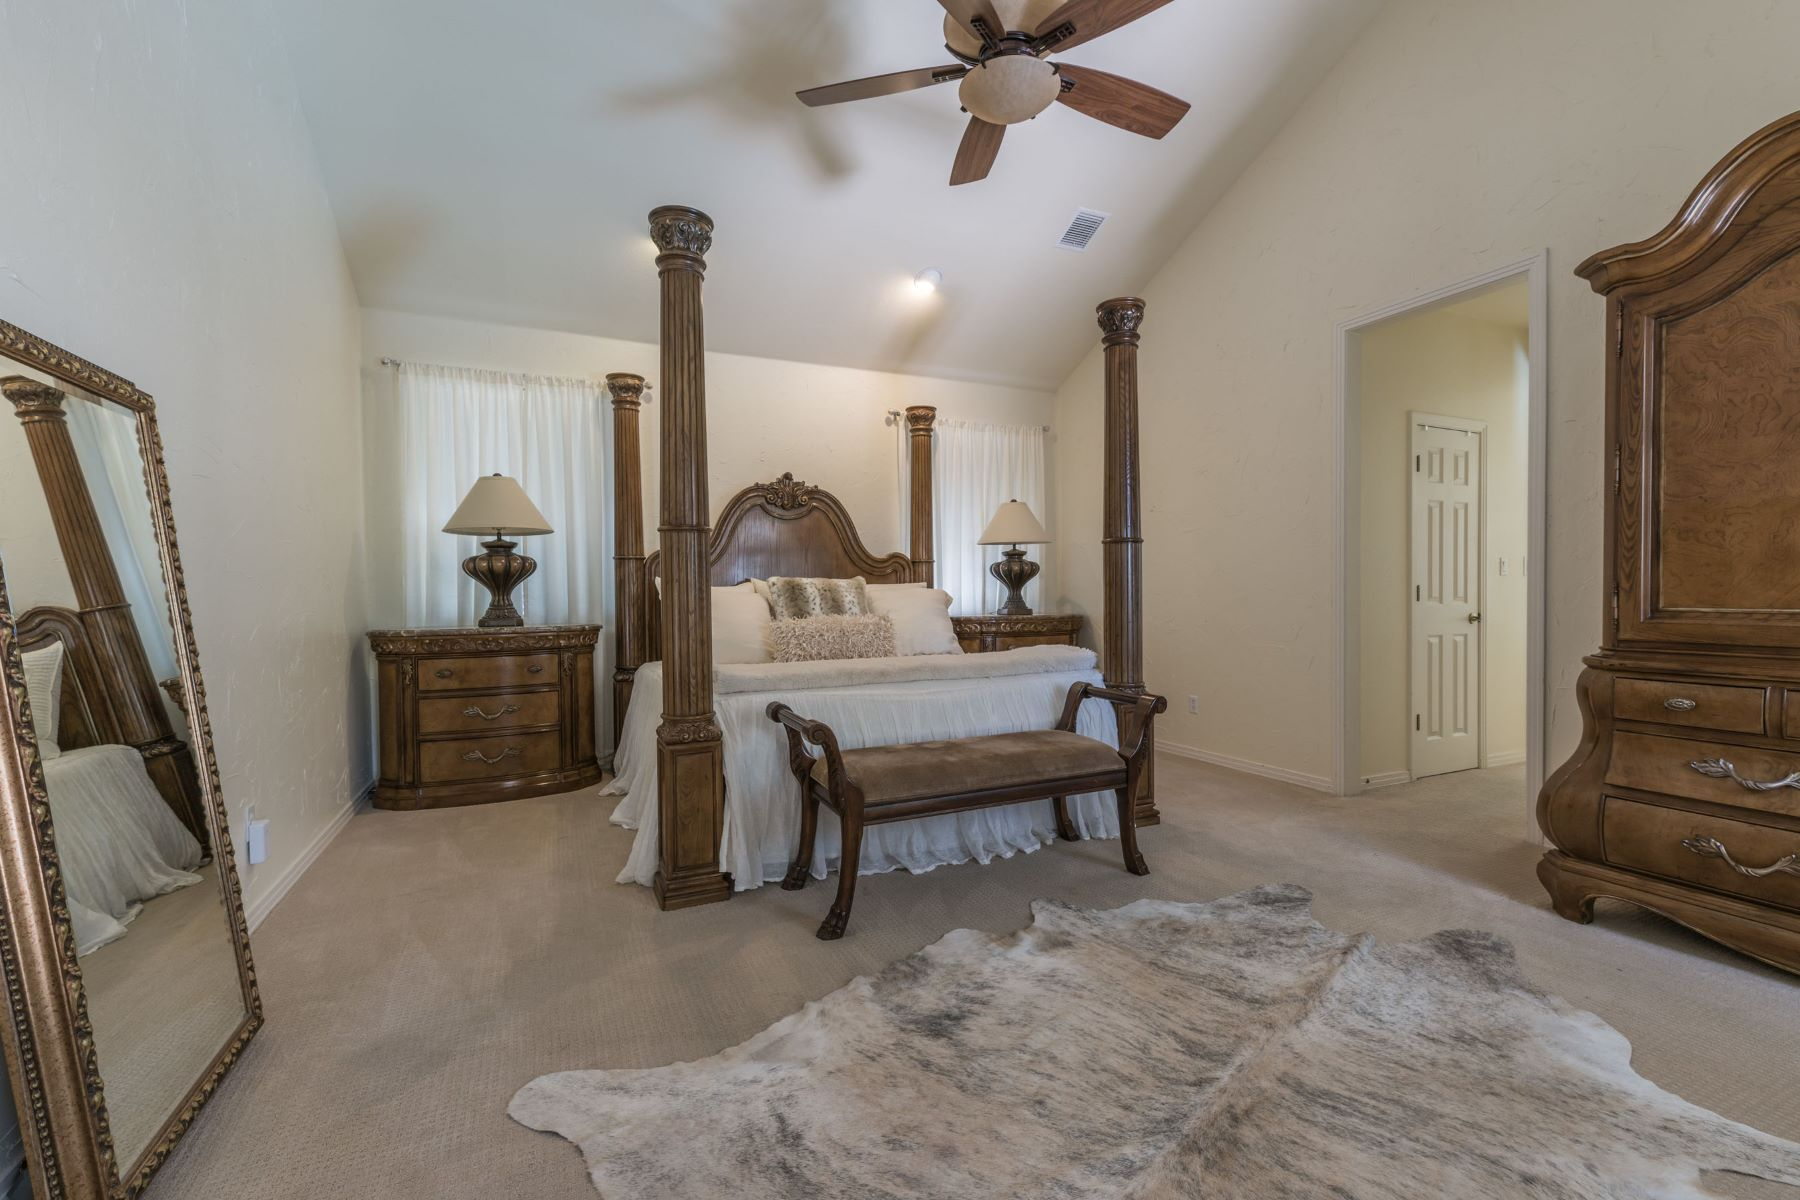 Additional photo for property listing at Convenient Living in a Desirable Neighborhood 4000 Kaywood Ct Bee Cave, Texas 78738 Estados Unidos